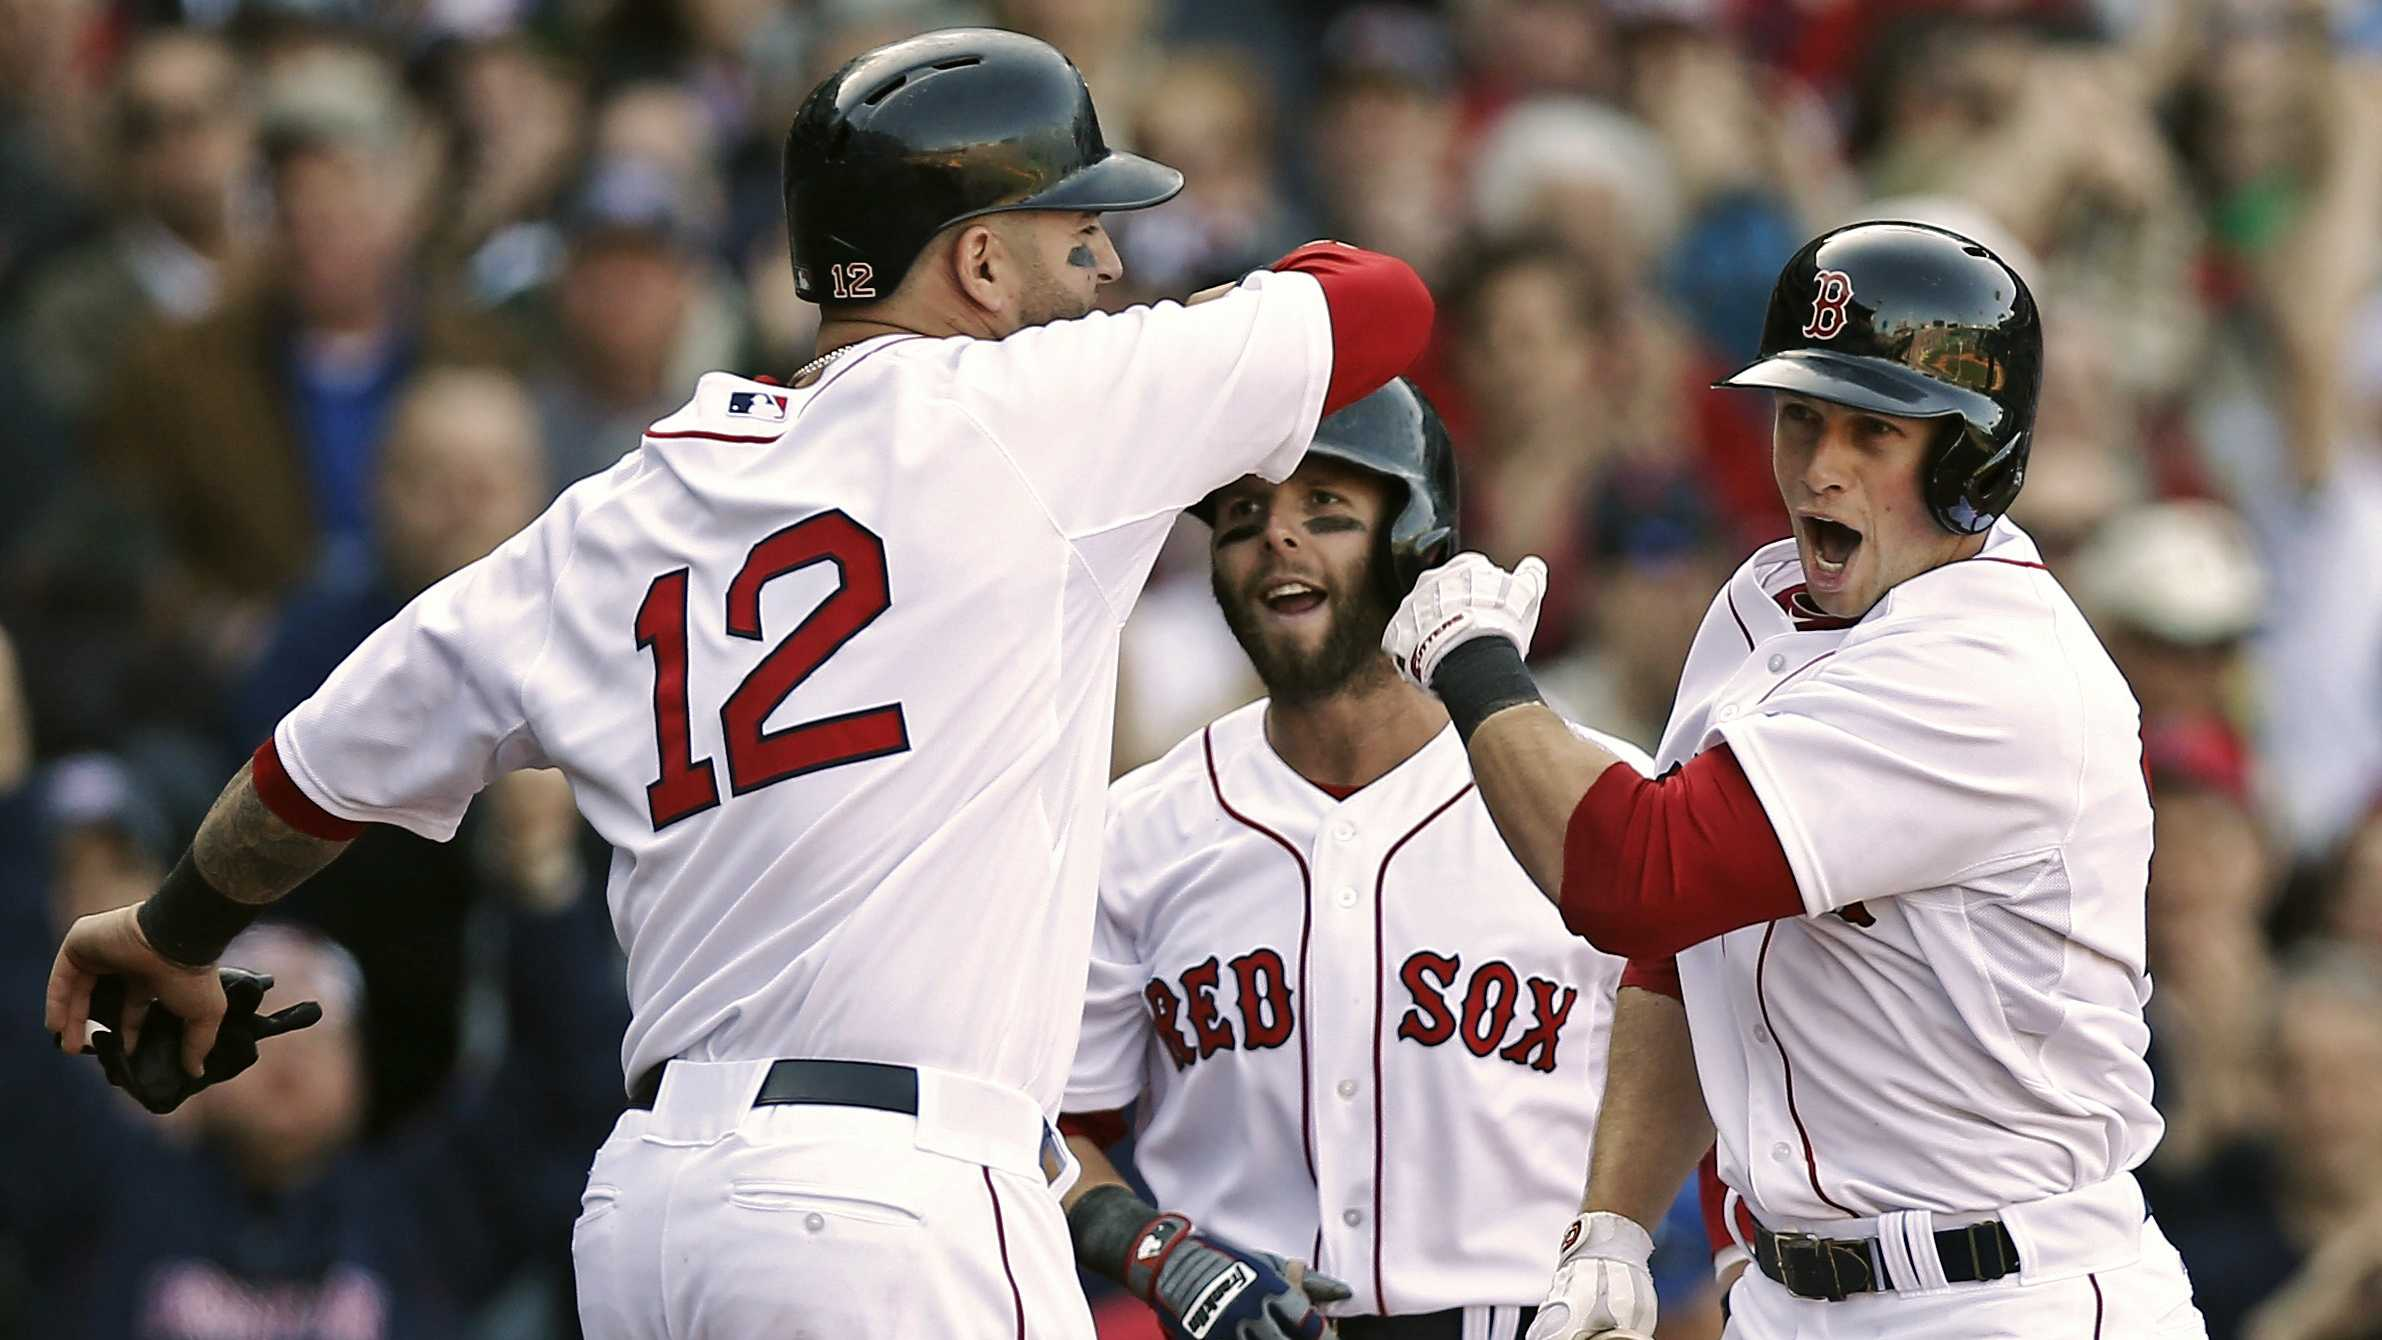 Daniel Nava, right, is greeted by Dustin Pedroia and Mike Napoli (12) after hitting a three-run home run during the seventh inning against the Baltimore Orioles at Fenway Park, April 8, 2013.